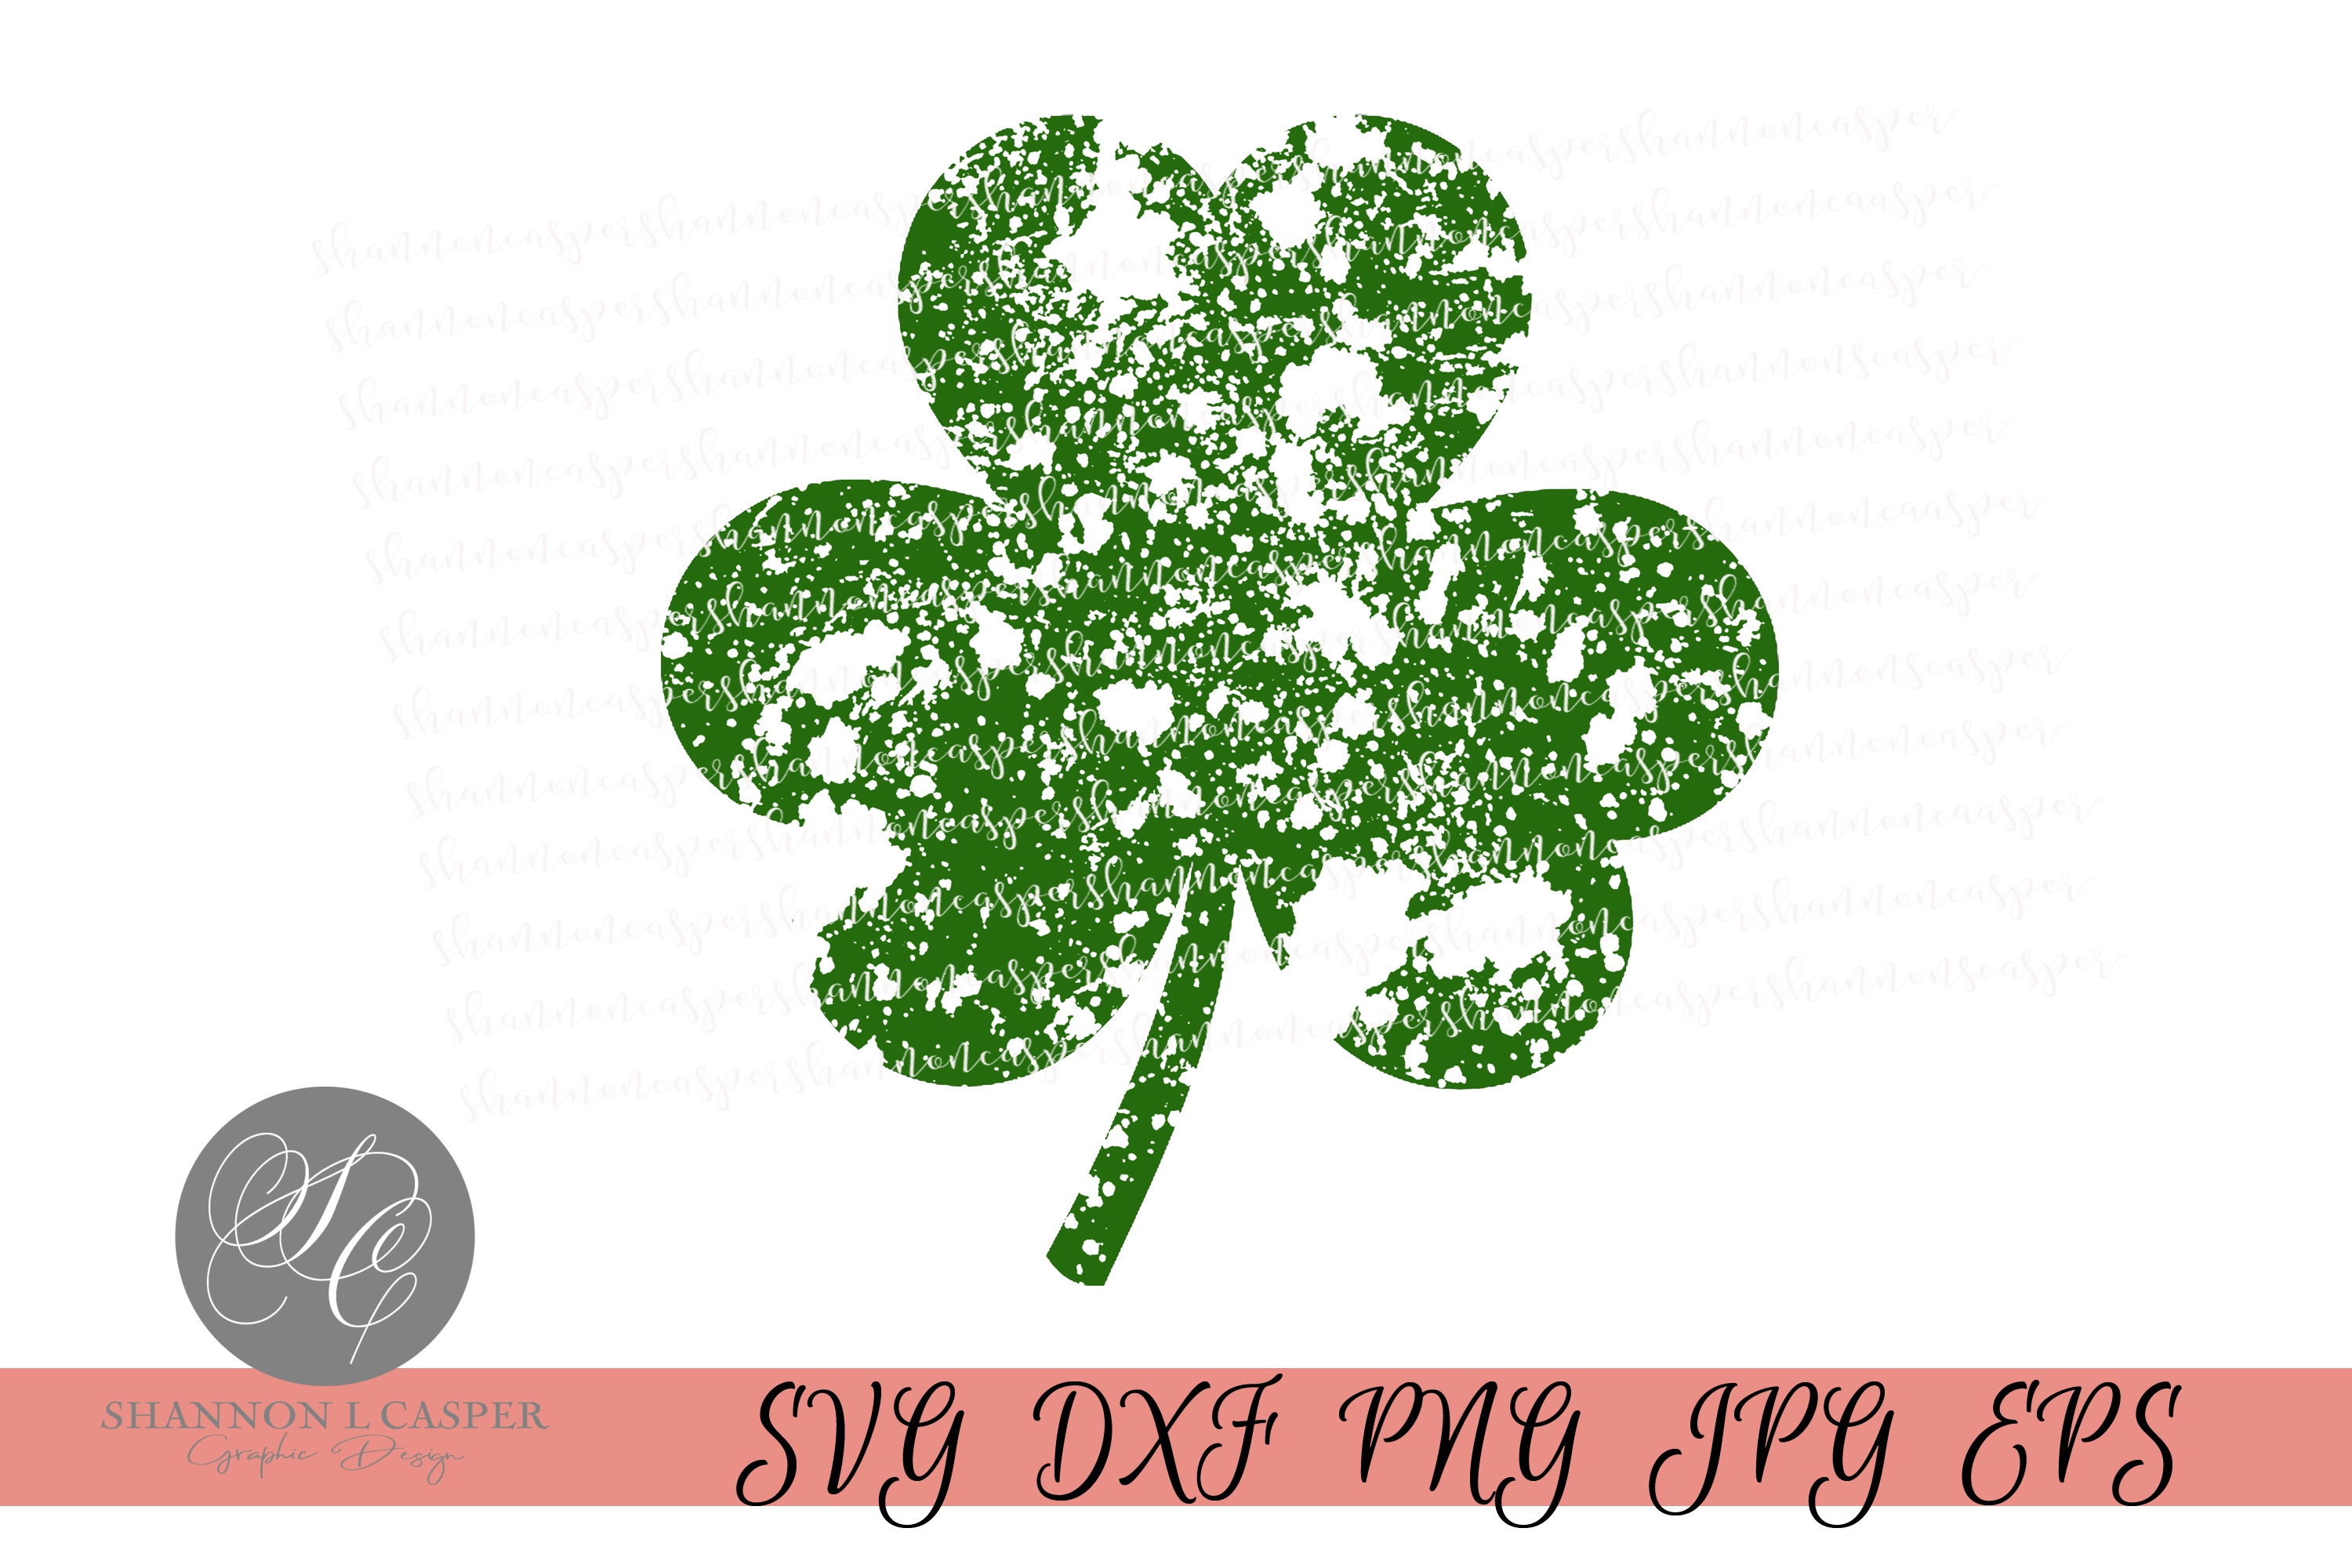 Download Free Distressed St Patricks Clover Graphic By Shannon Casper for Cricut Explore, Silhouette and other cutting machines.